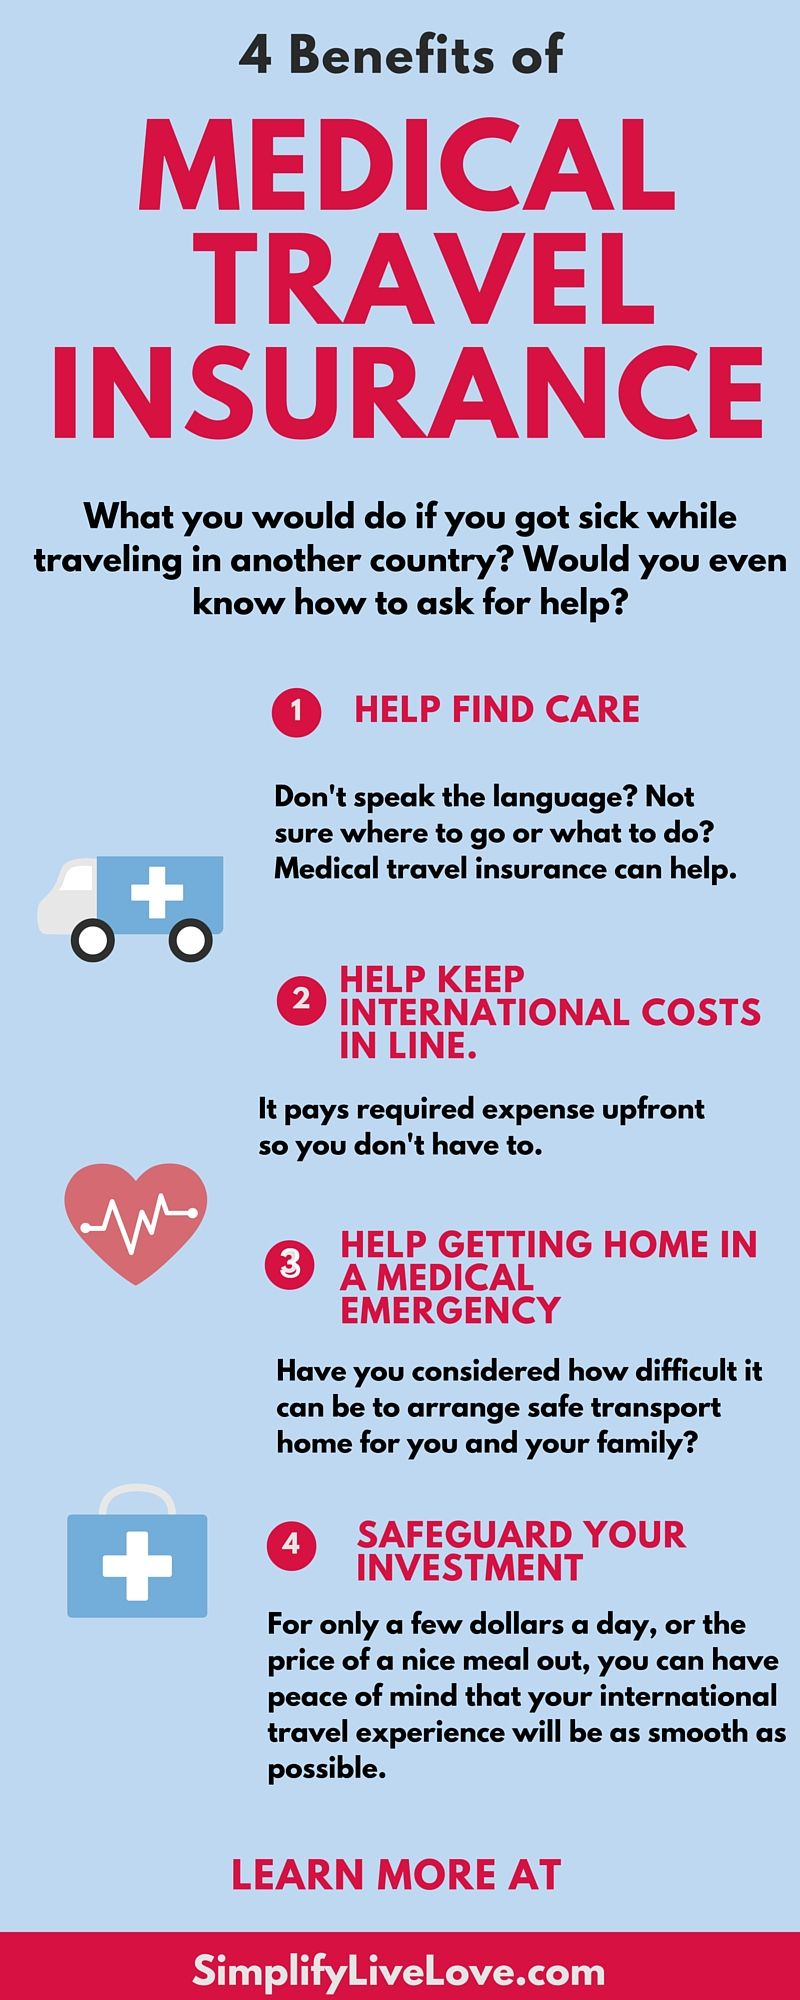 Why You might consider medical travel insurance for